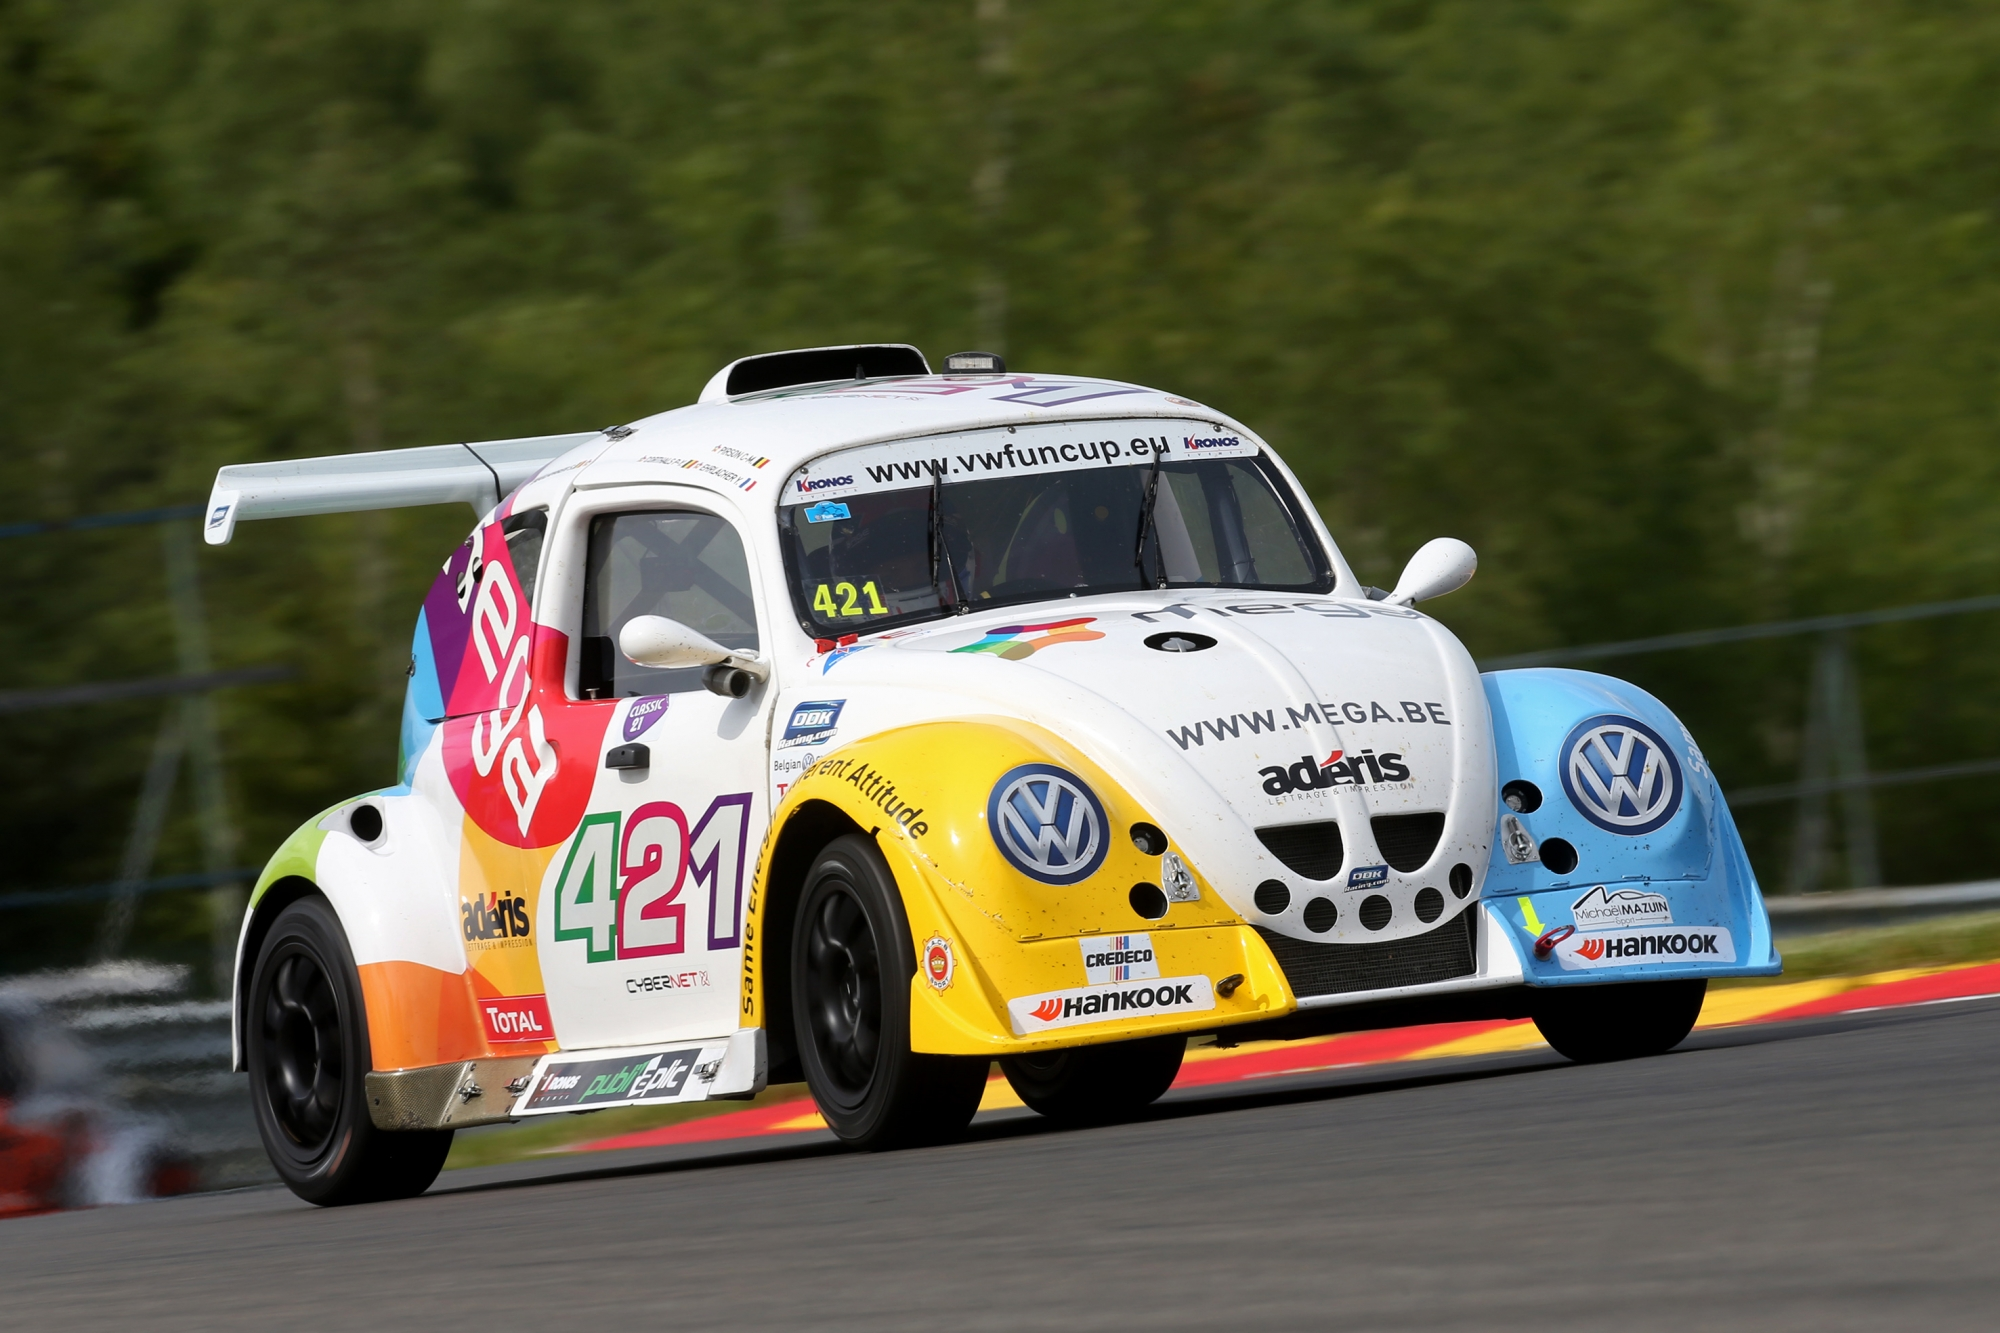 image 0 - Jean-Karl Vernay renforce le DDK Racing pour les Hankook 25 Hours VW Fun Cup